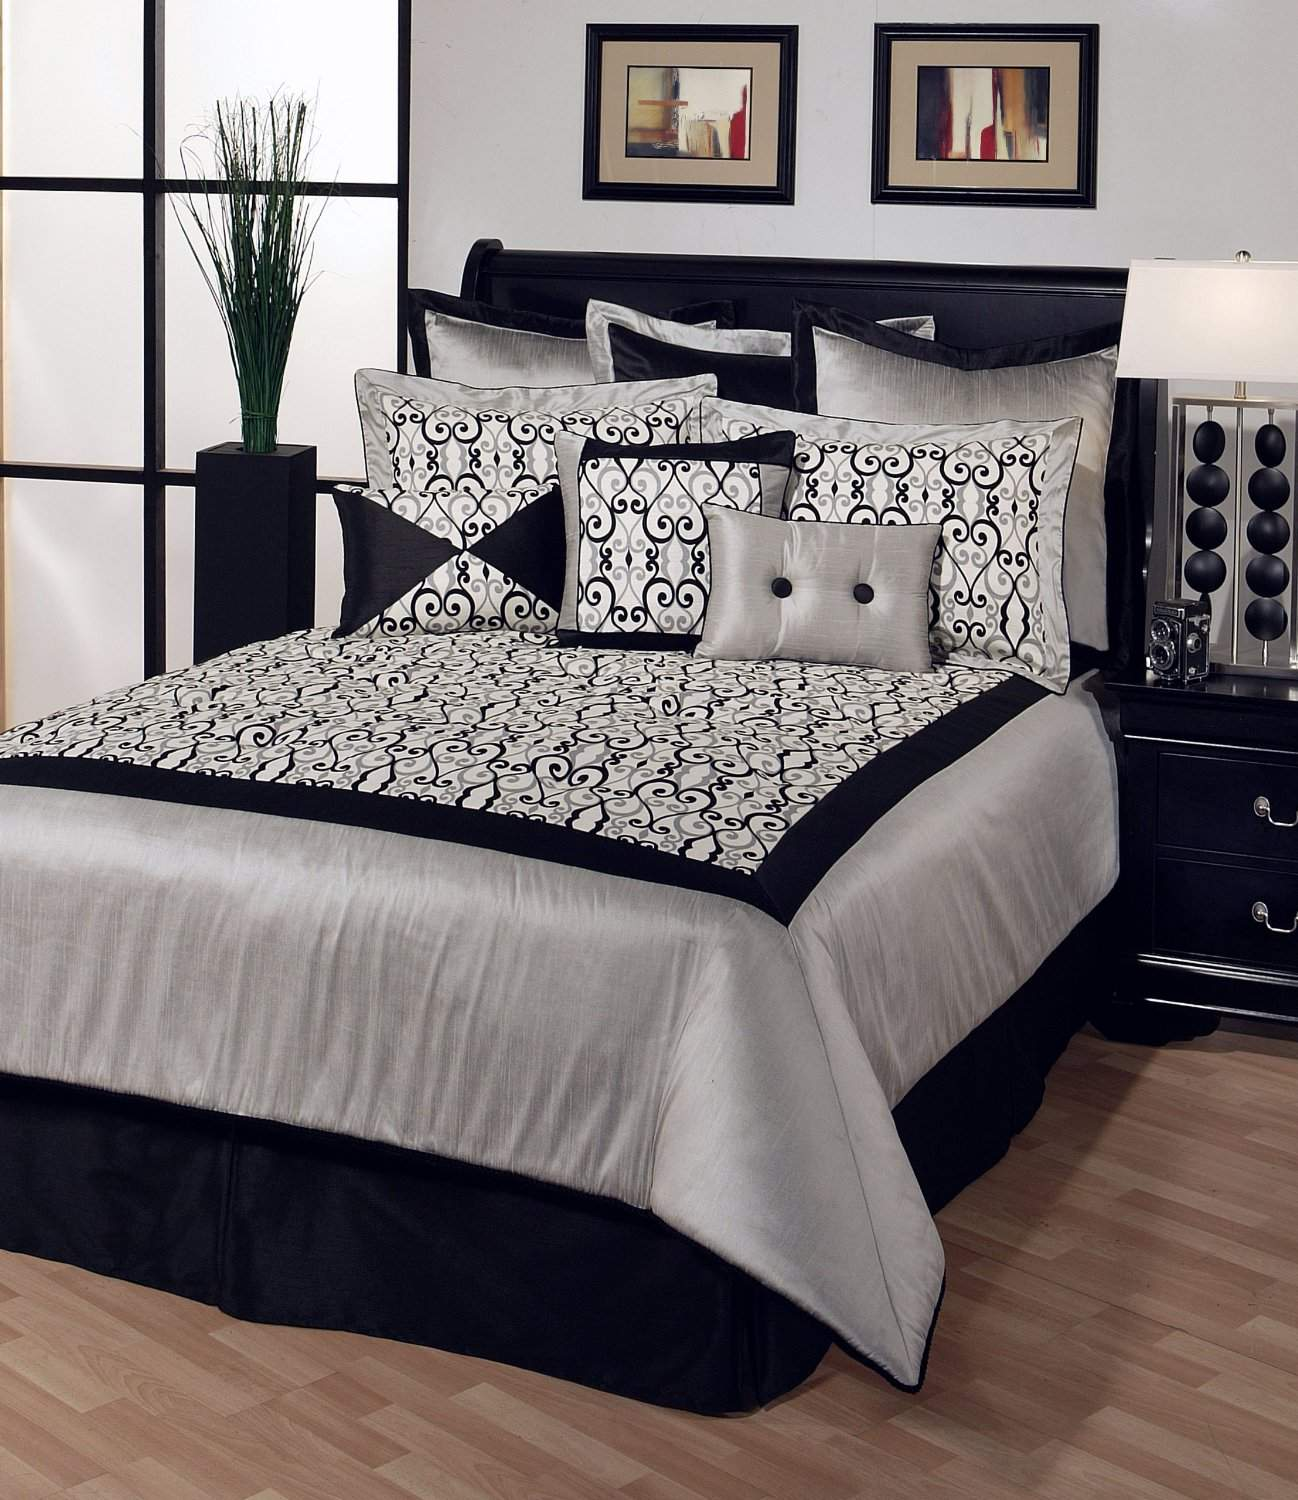 Black and White Bedrooms Pictures Ideas - Home Decorate Ideas